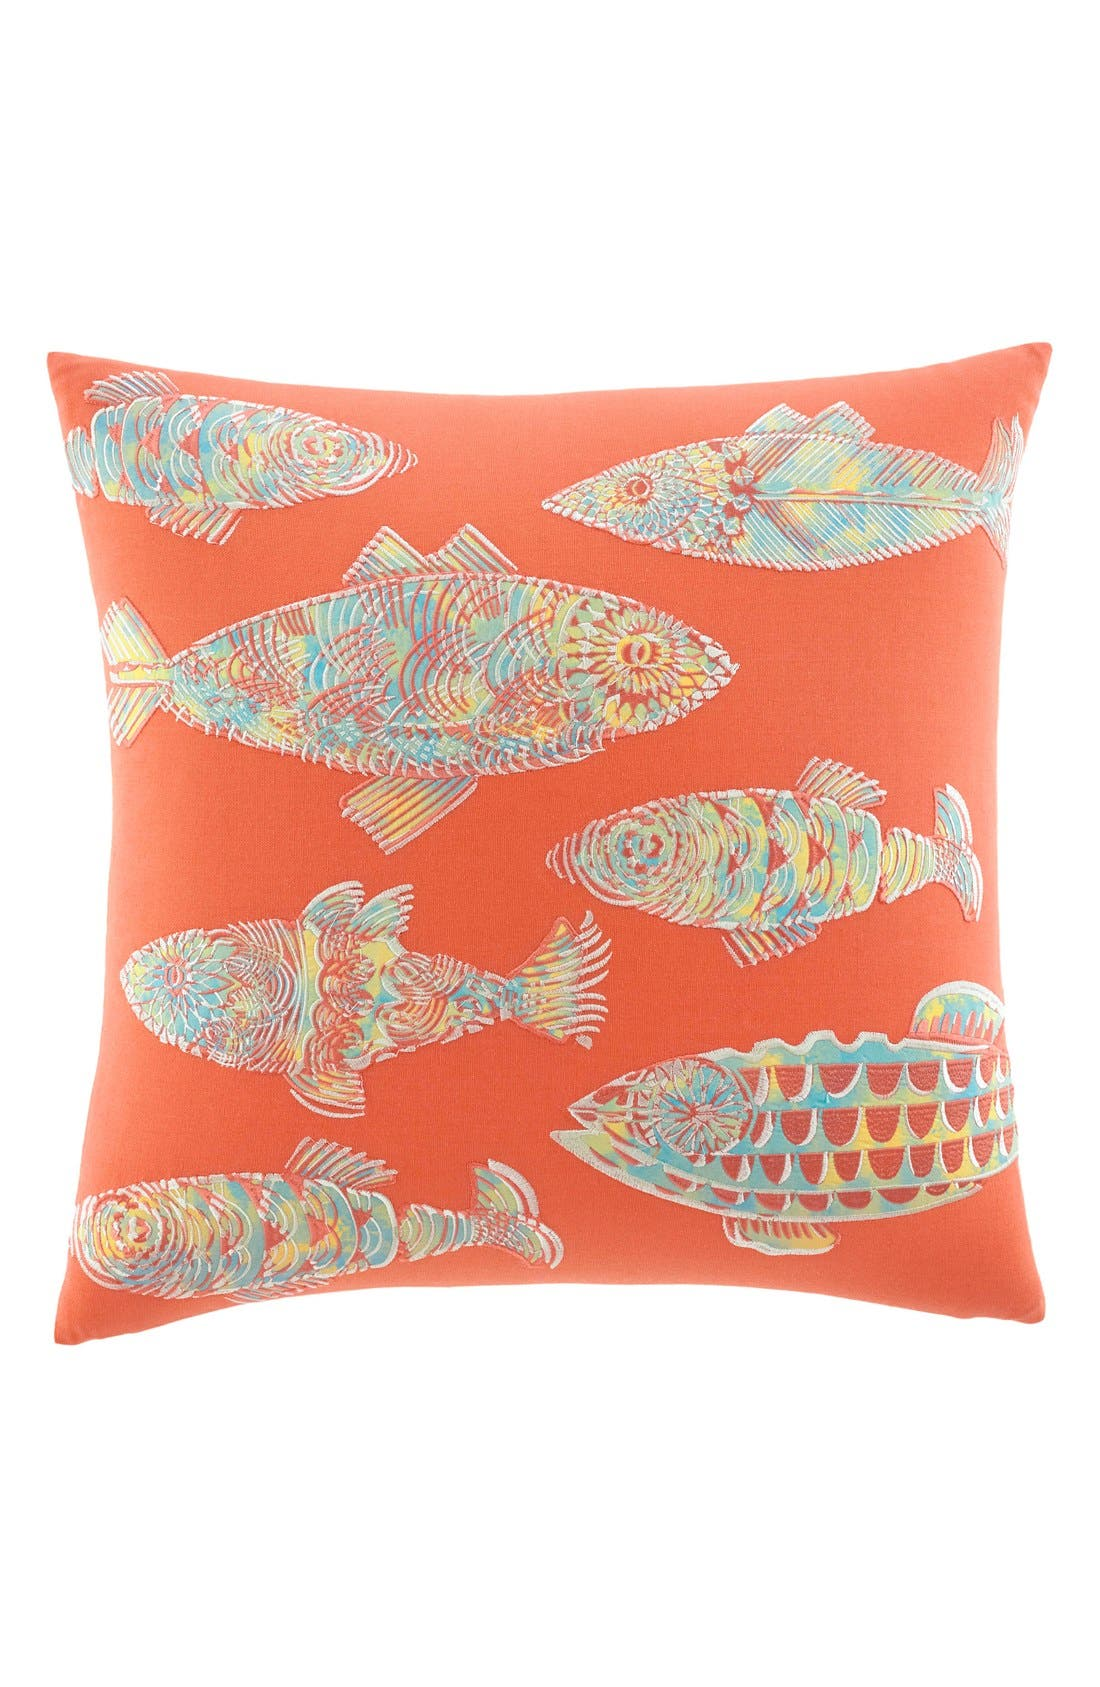 'Batic Fish' Pillow,                         Main,                         color, CORAL/ MULTI